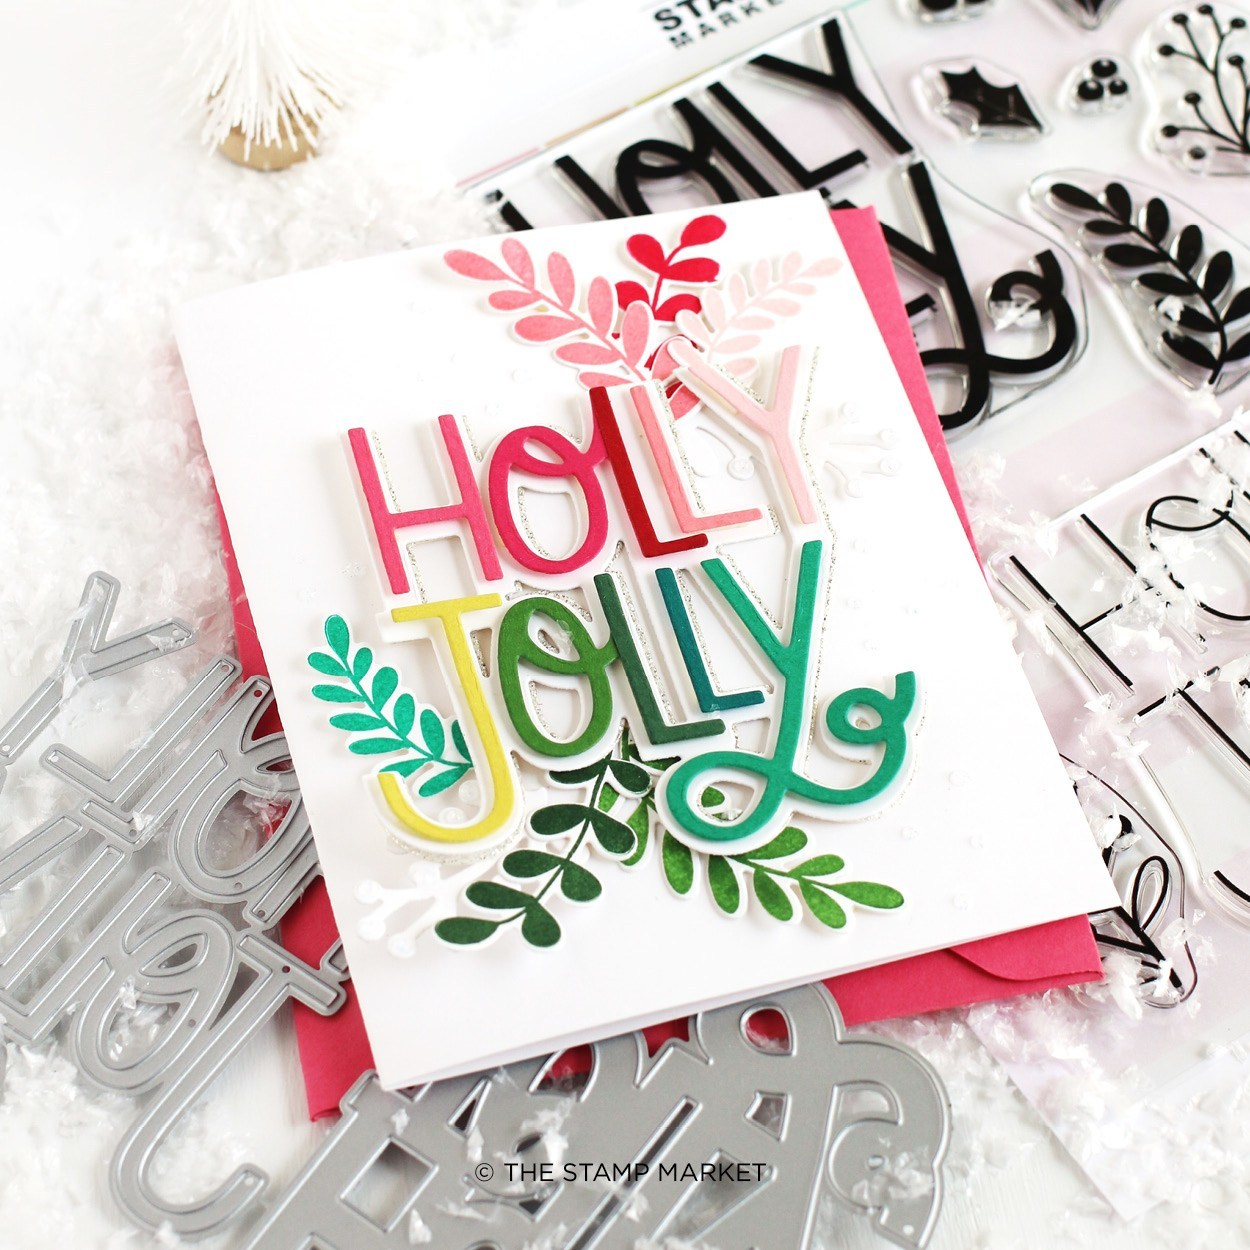 The Stamp Market セット♪ - Holly Jolly Greenery